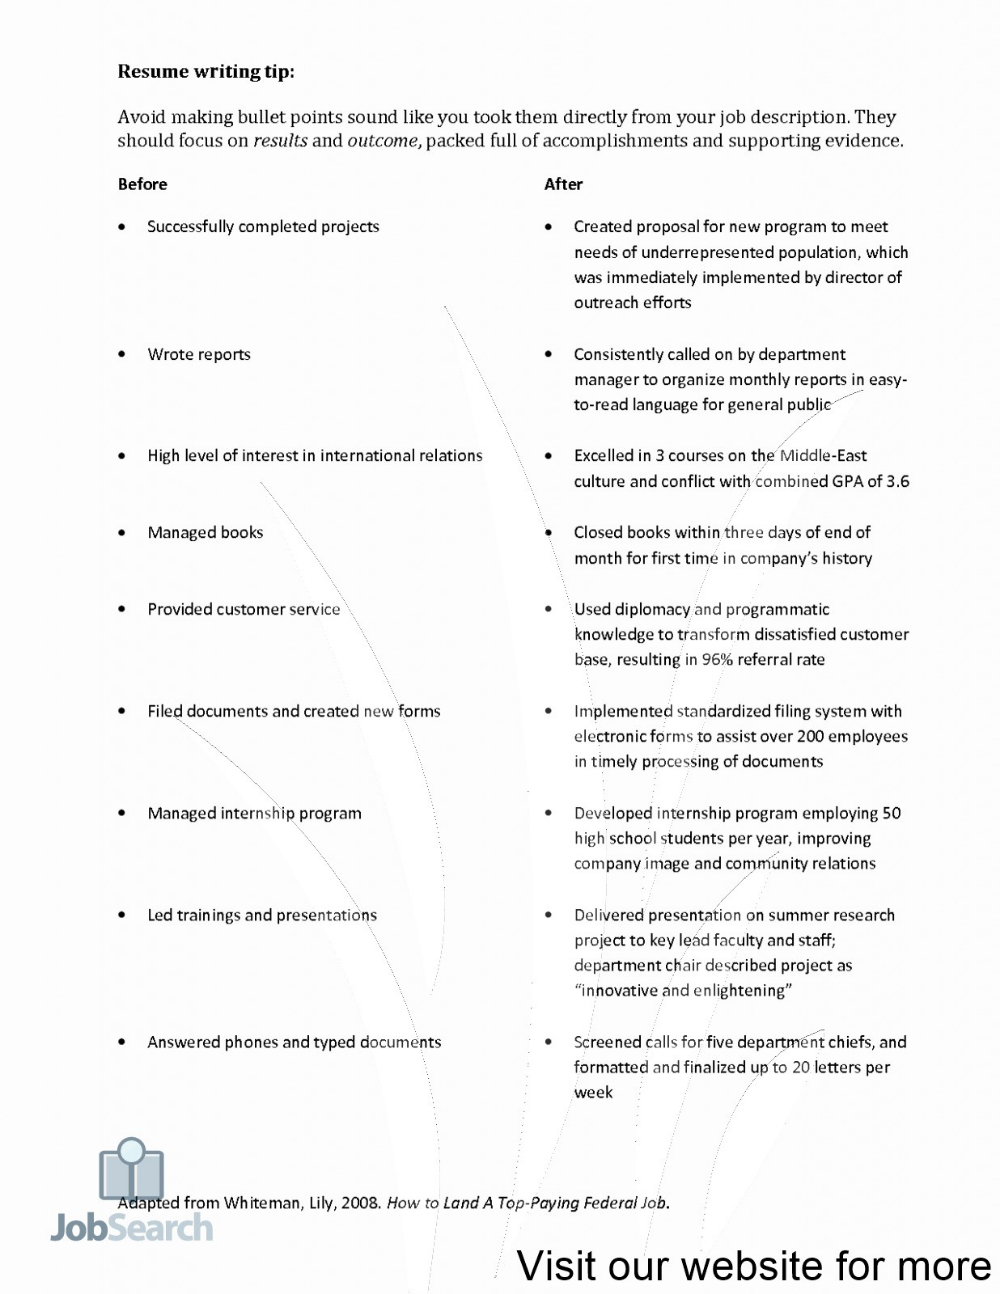 Basic Resumes Examples 2020 Resume for Jobs in 2020